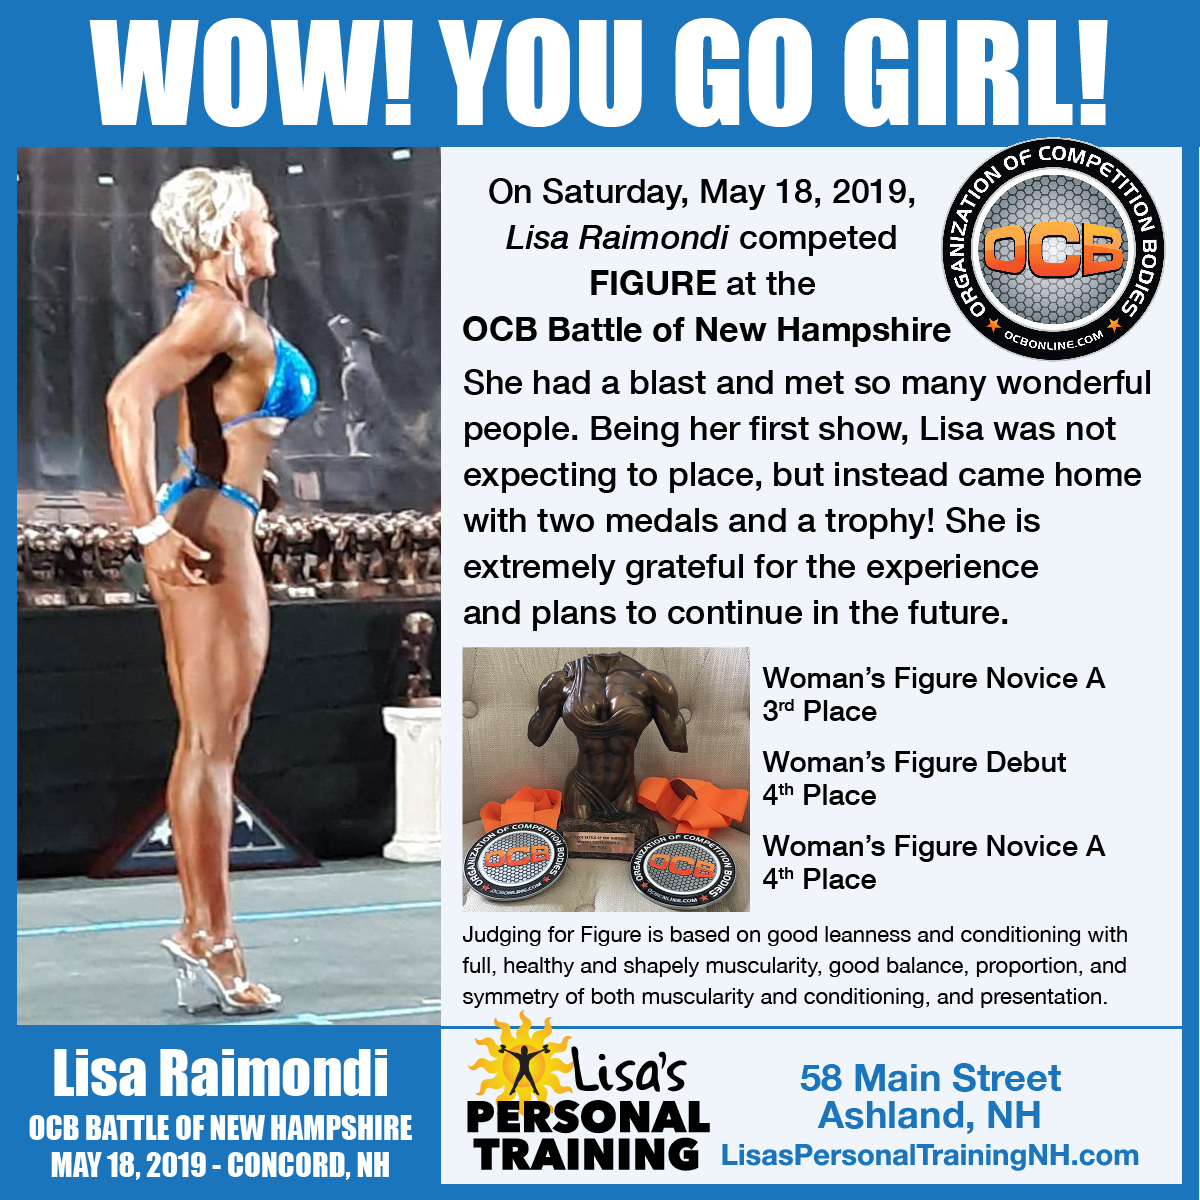 On Saturday, May 18, 2019, Lisa Raimondi competed FIGURE at the OCB Battle of New Hampshire